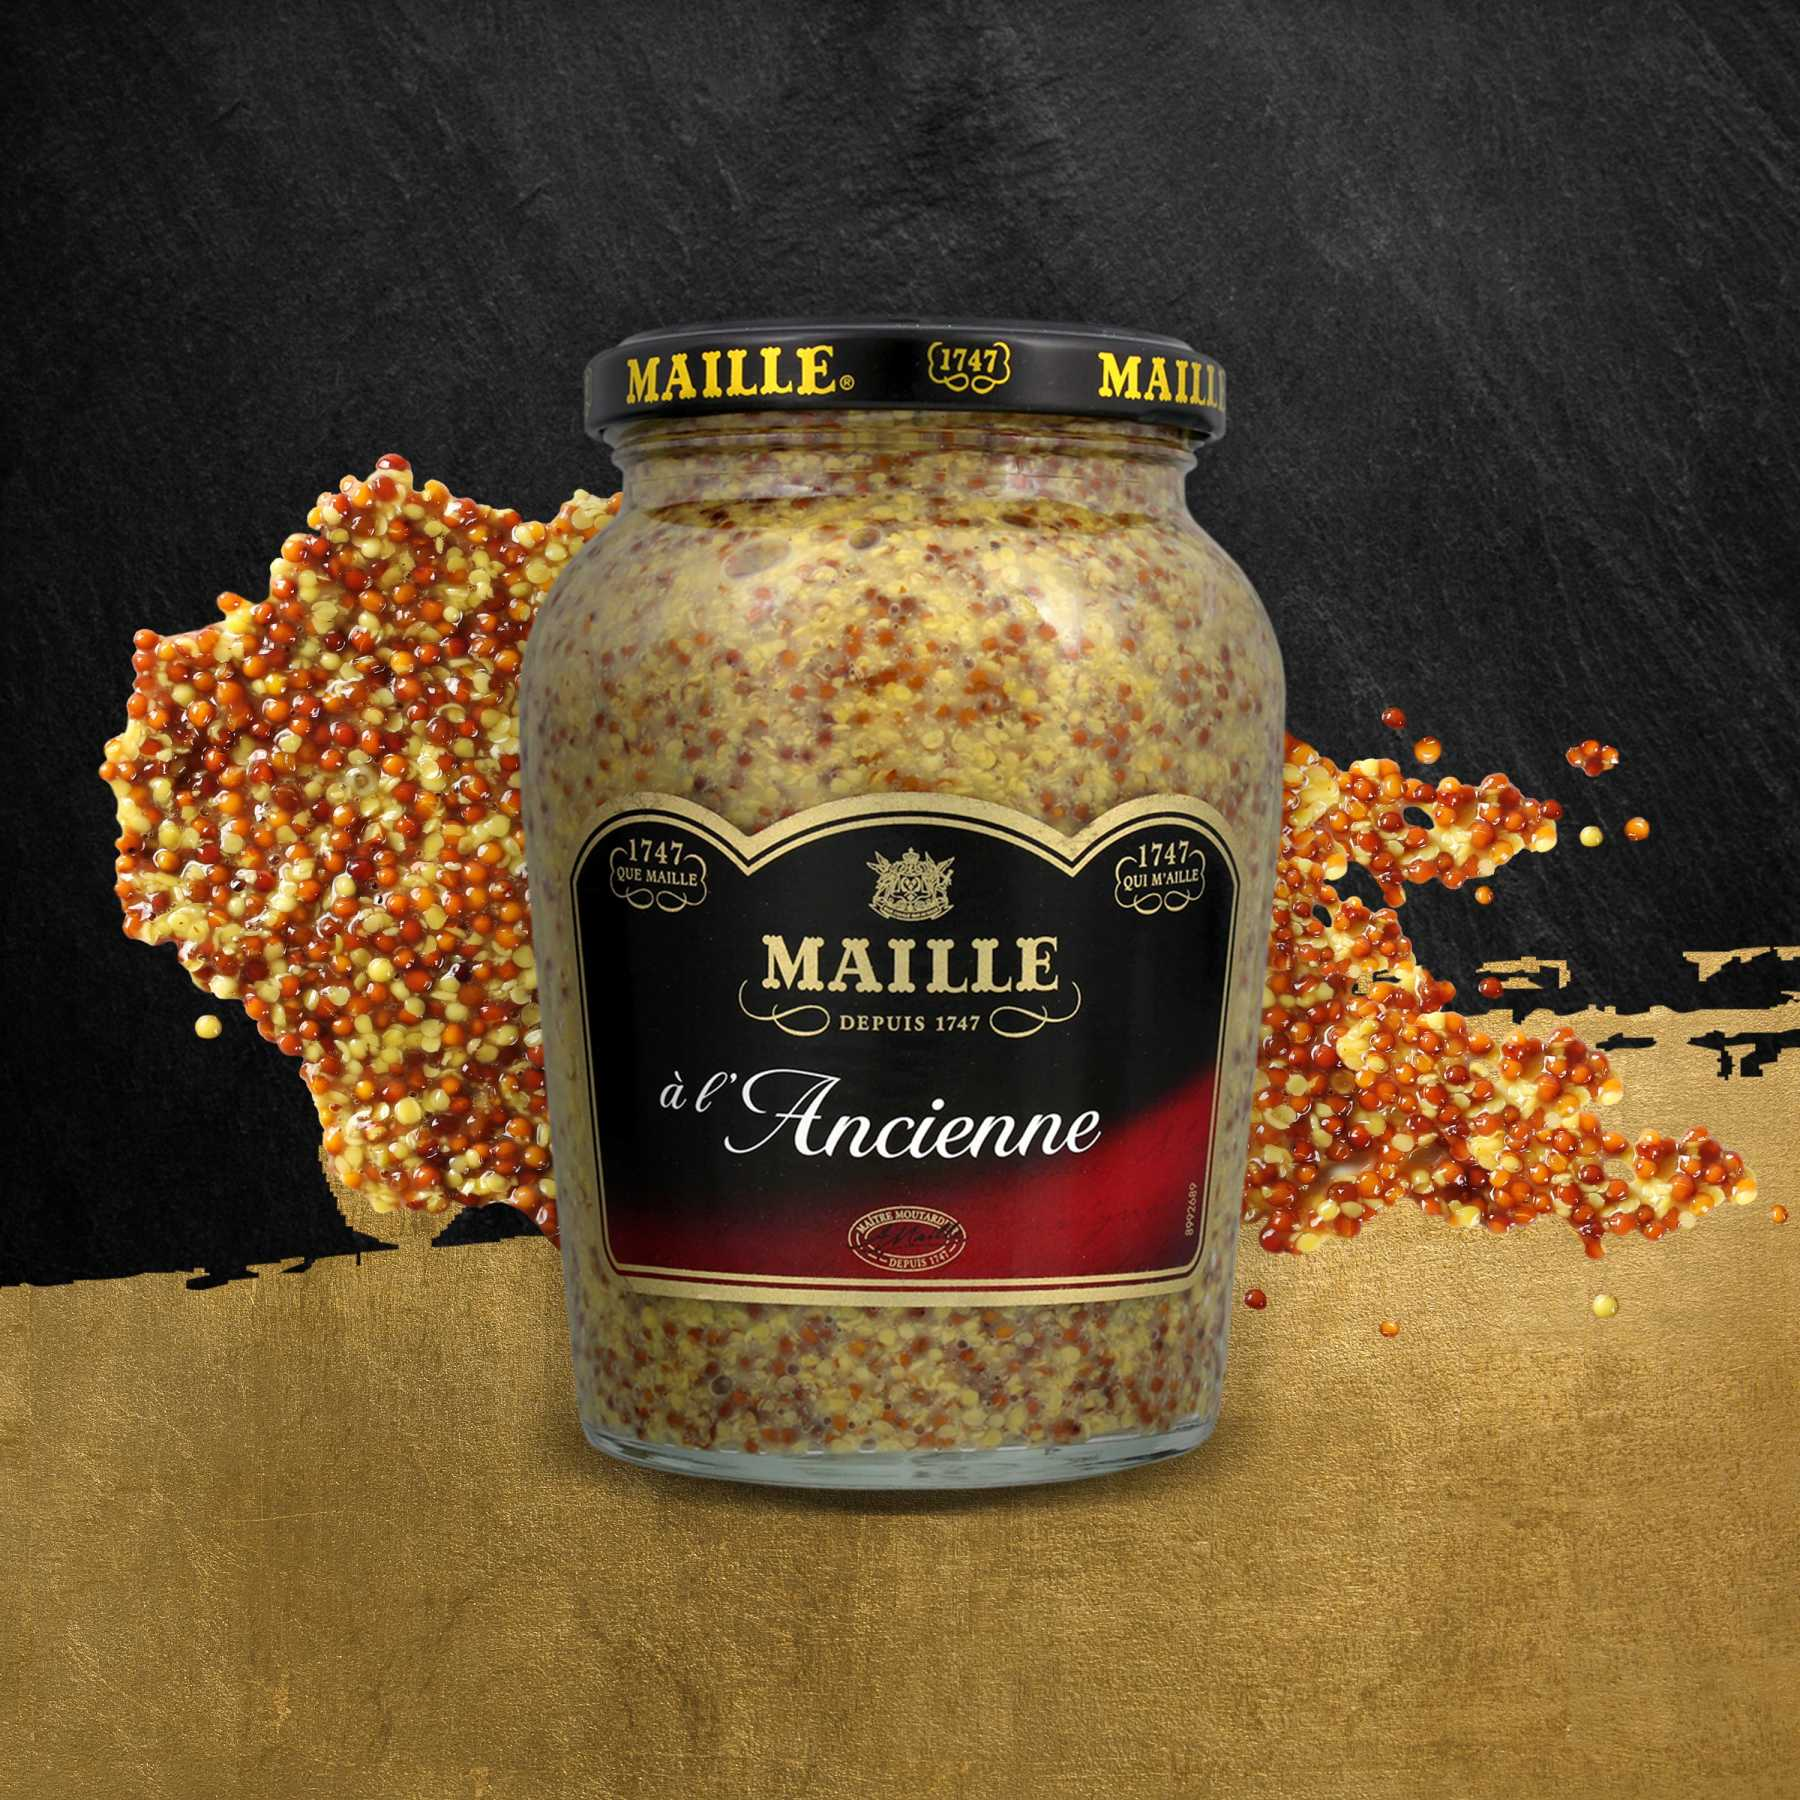 Maille - Moutarde à l'Ancienne Bocal 380 g, new visual